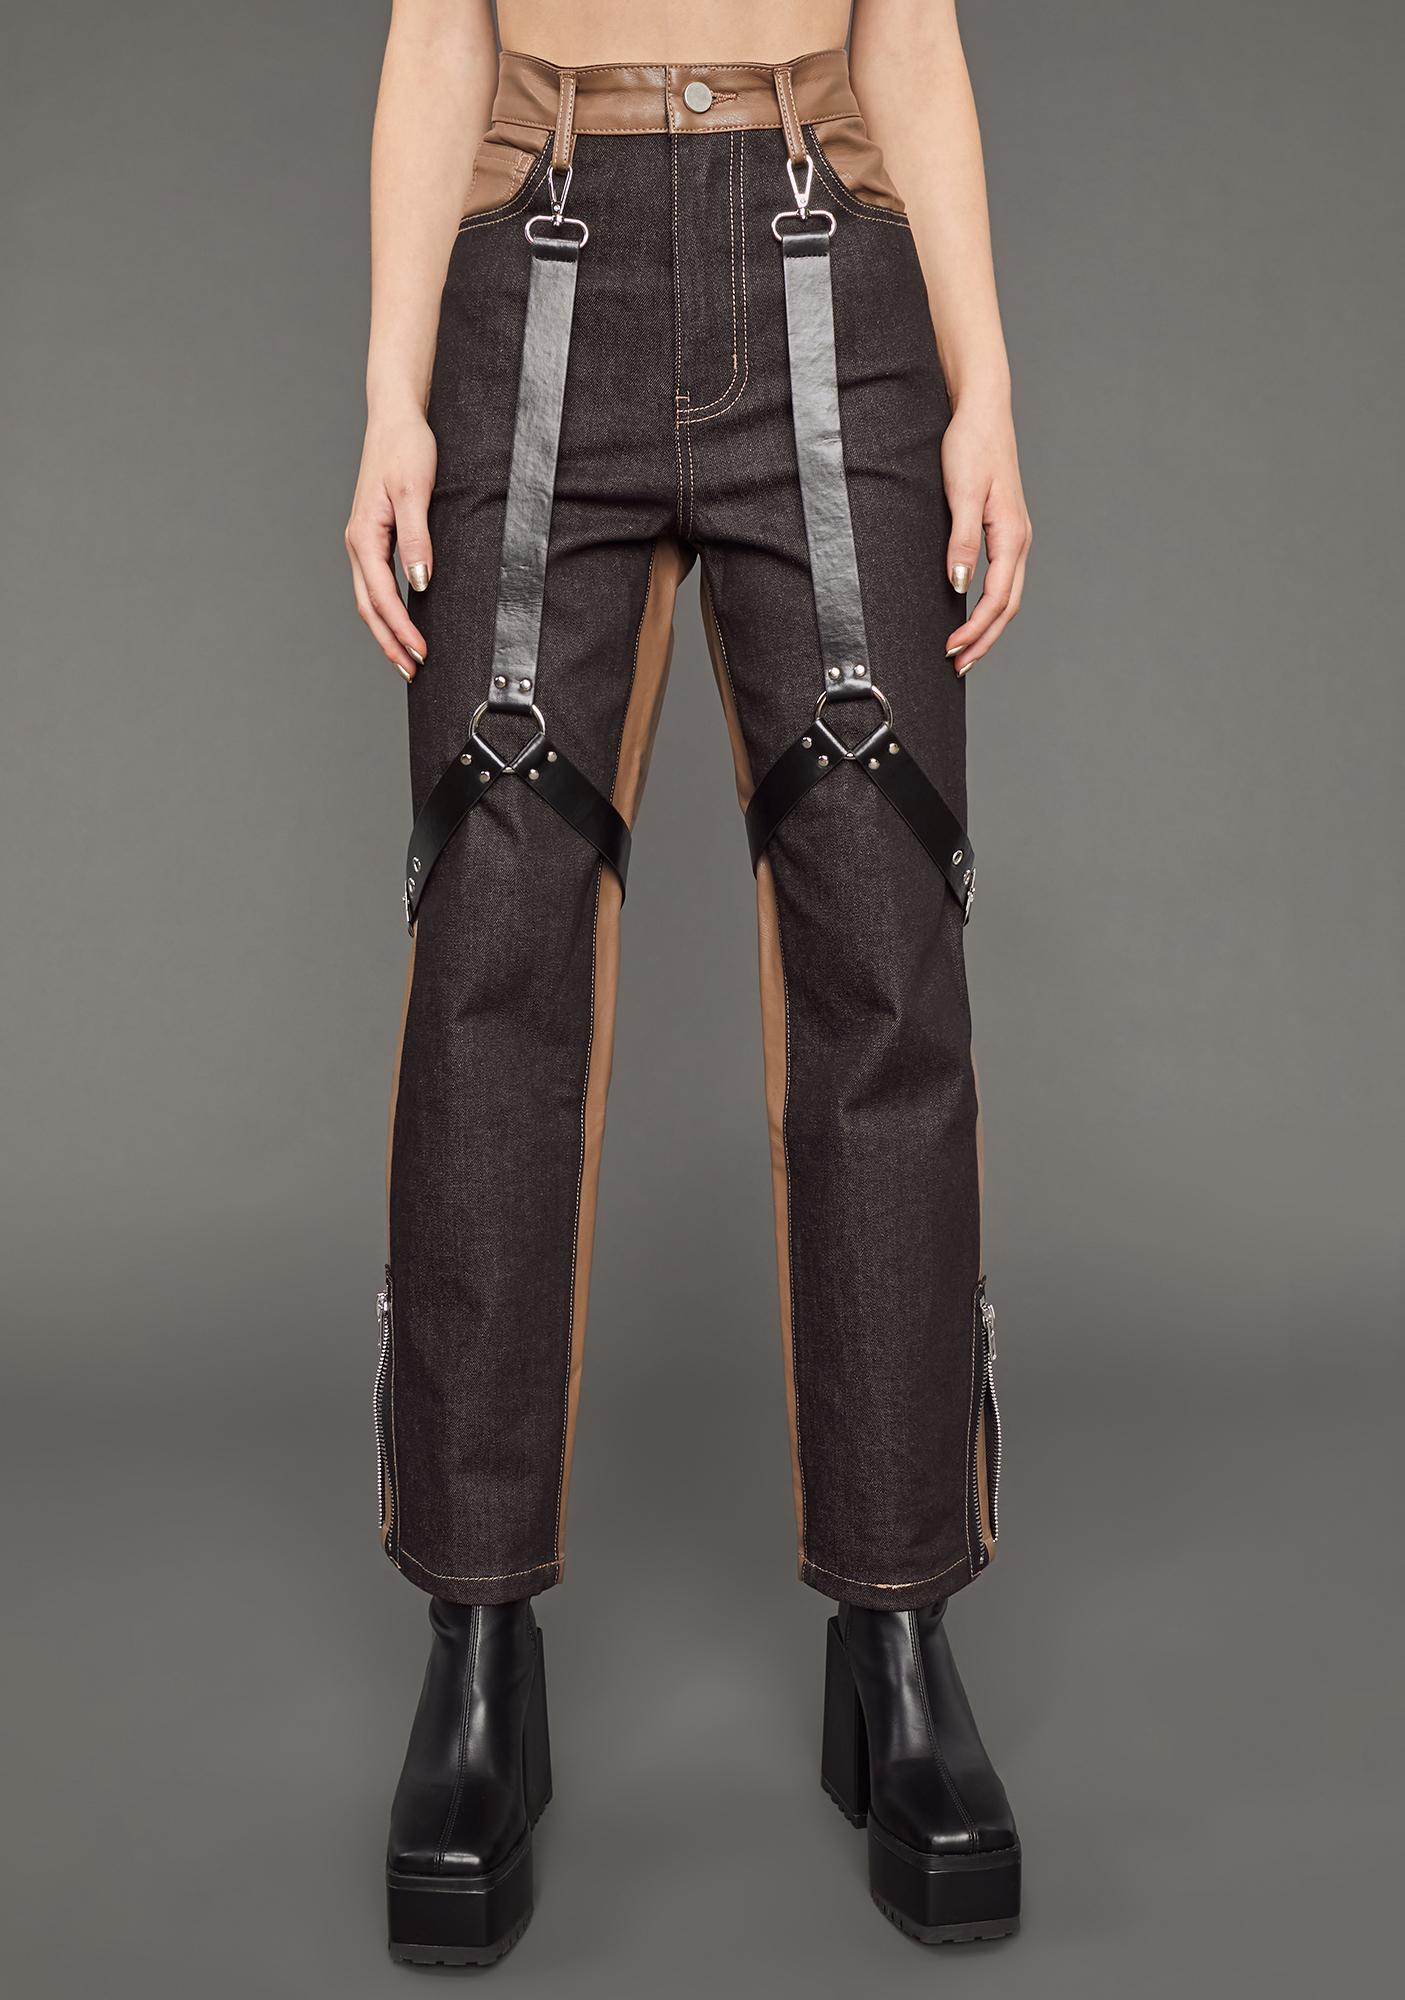 Poster Grl Match My Energy Two-Tone Harness Jeans